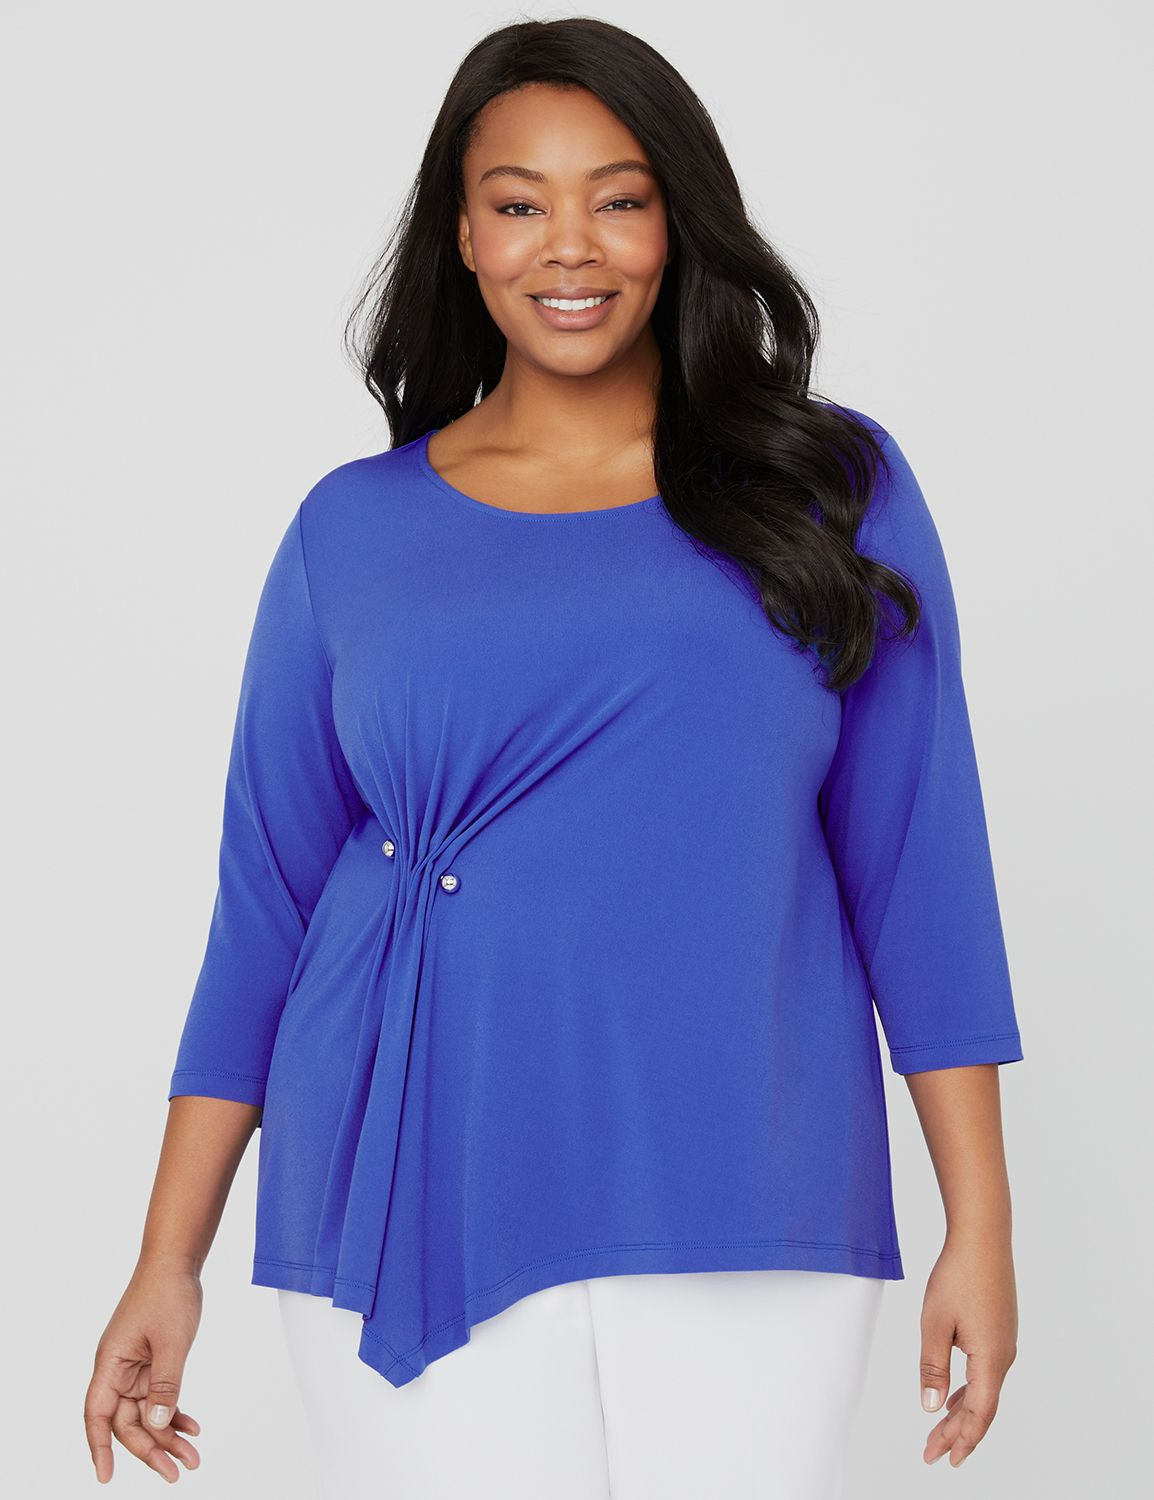 Black Label Blue Diamond Top 1090803 Asymmetrical Knit Top with MP-300102571